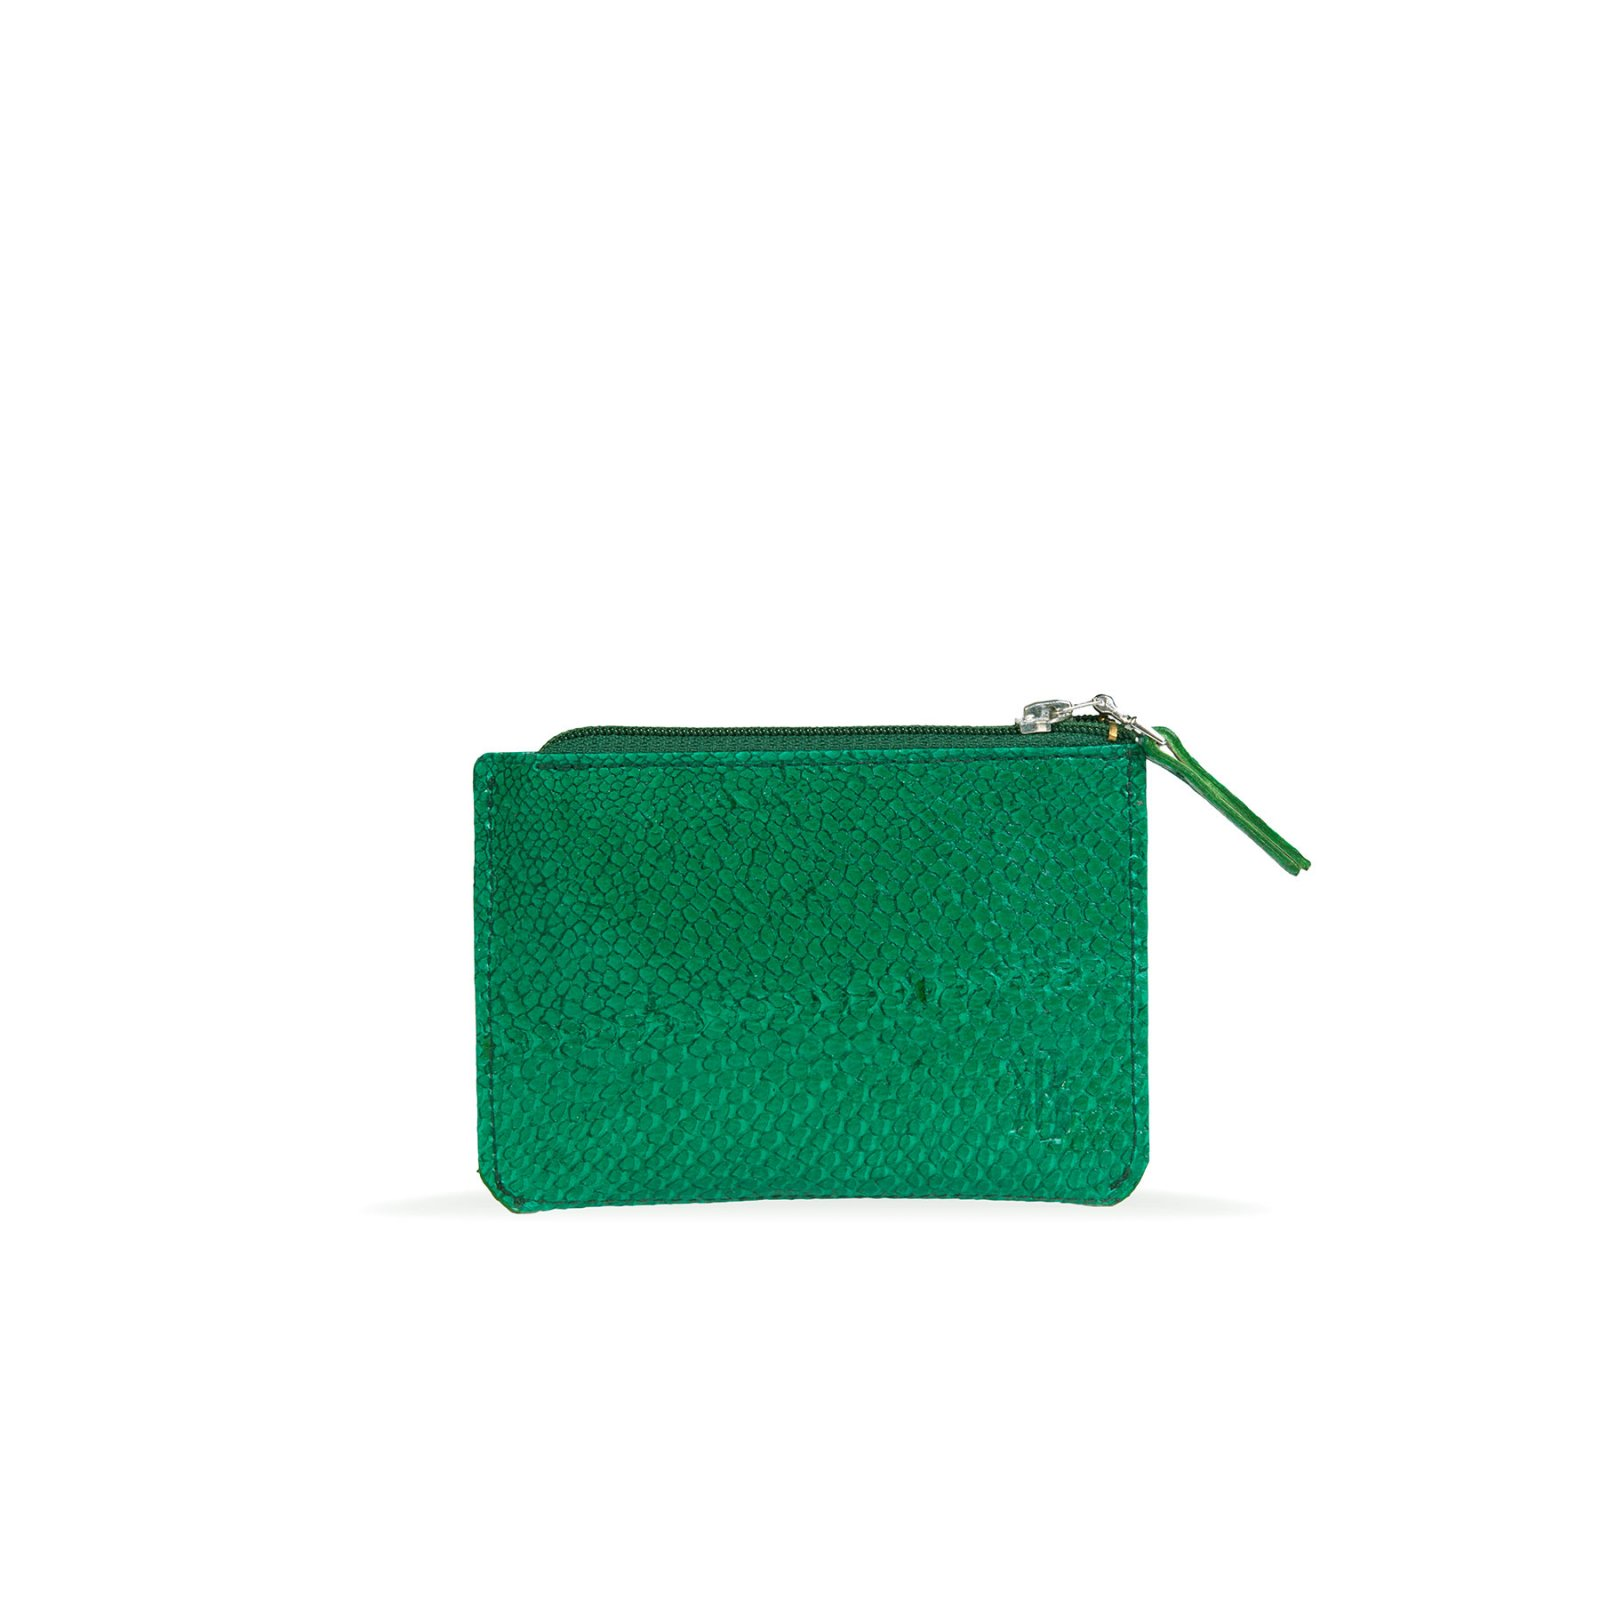 renee-paris-green-banka-purse-1